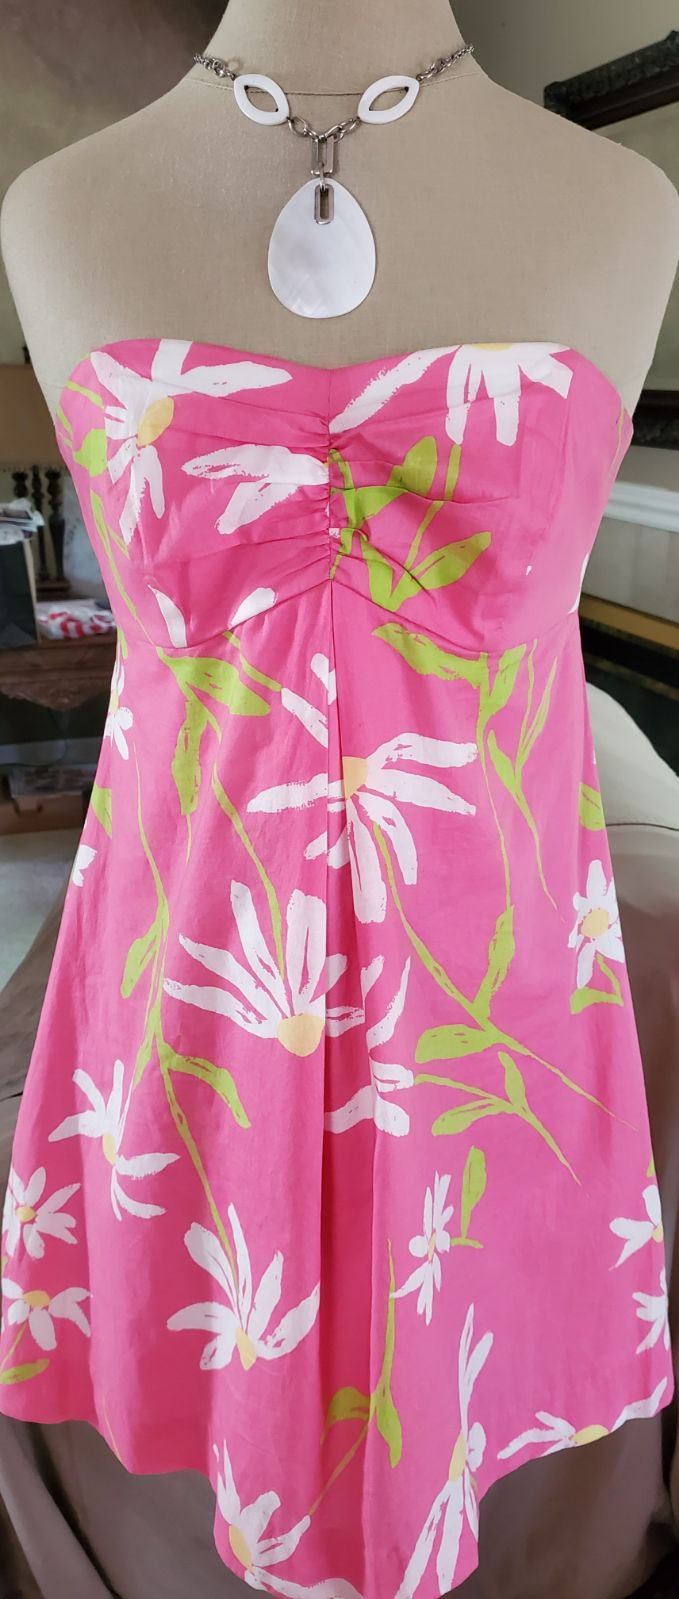 Lilly Pulitzer‼️dress w/ built-in bra, 6